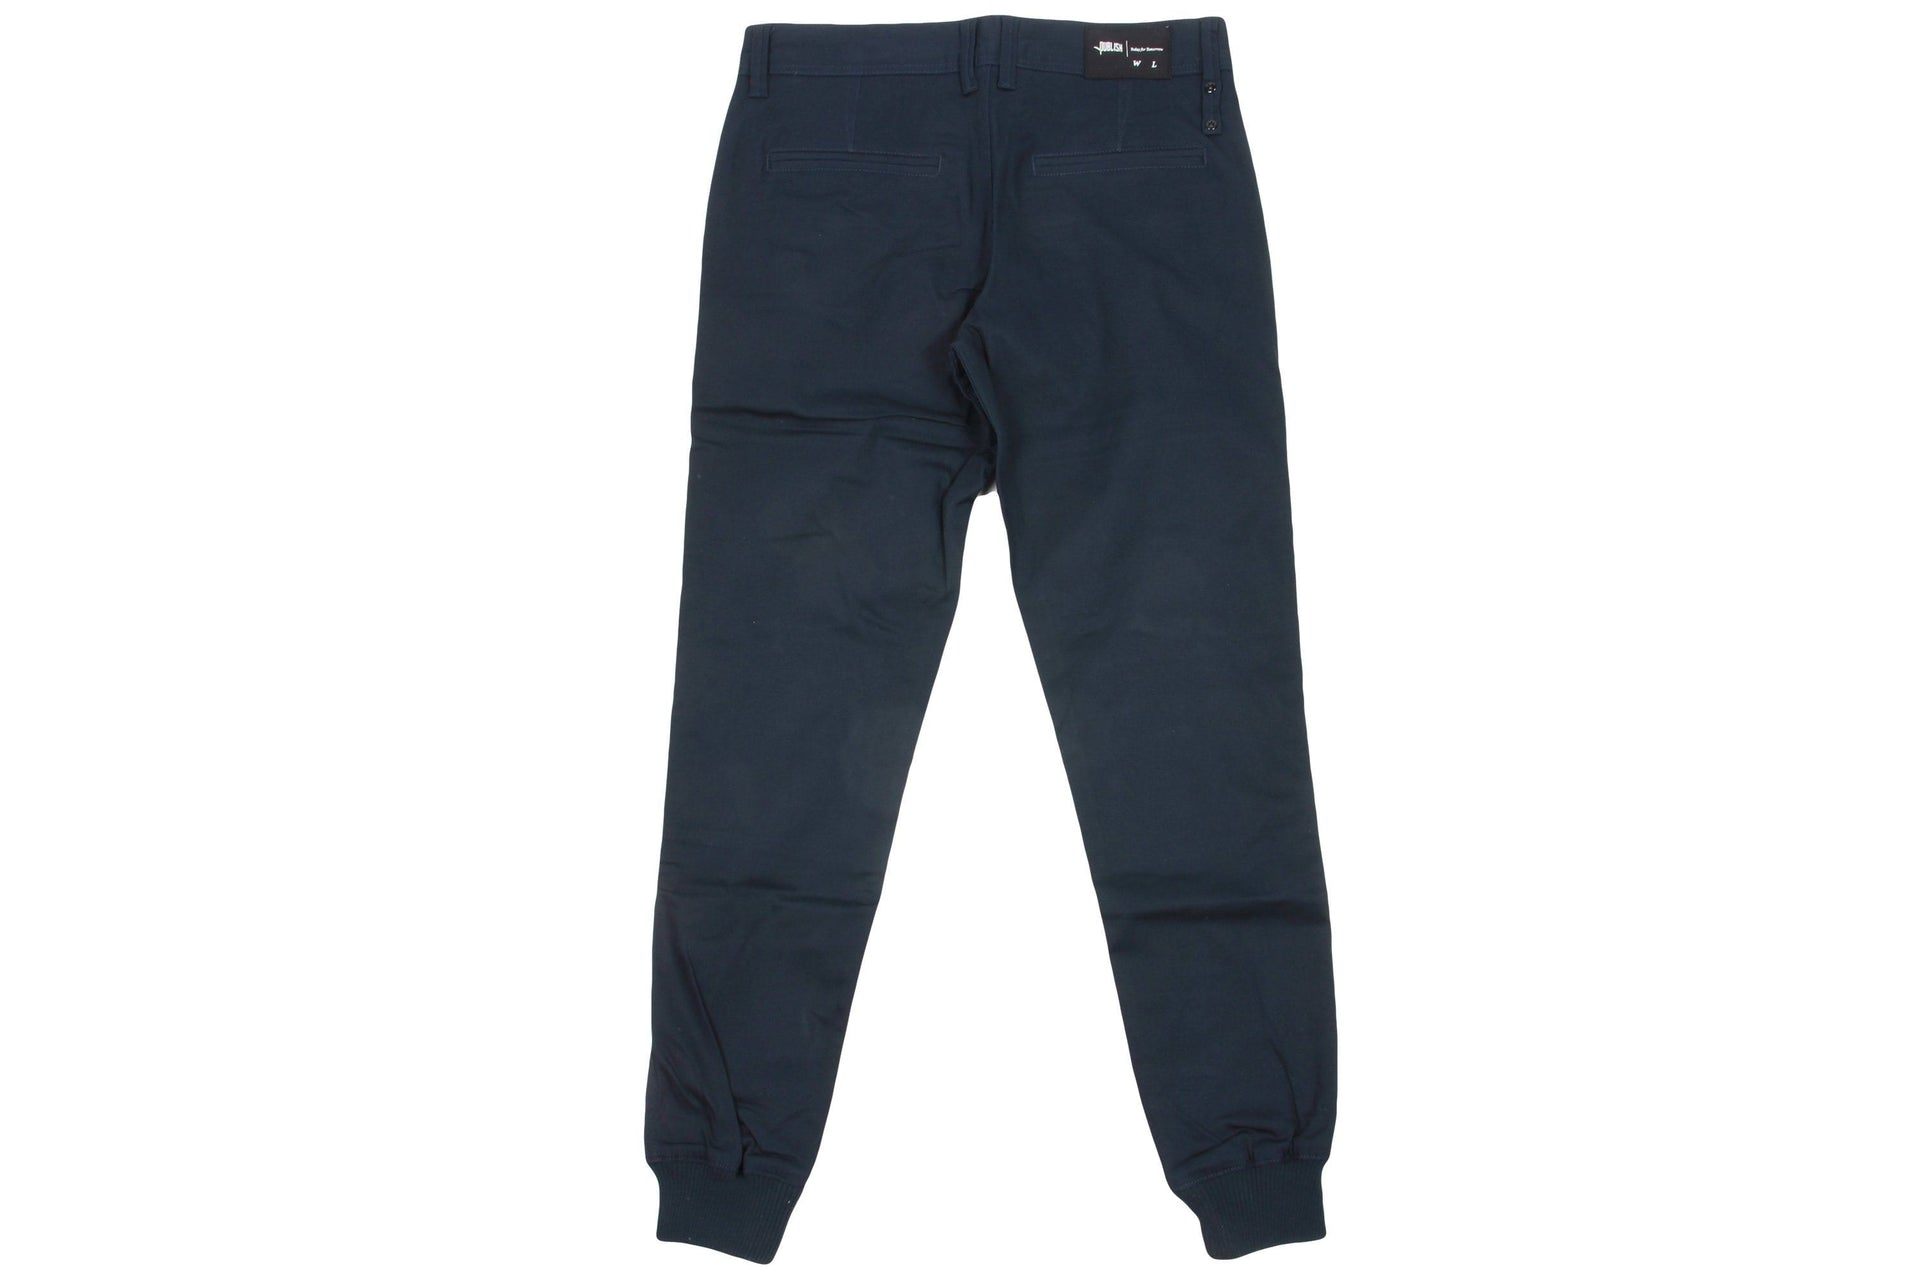 LEGACY NAVY MENS SOFTGOODS PUBLISH